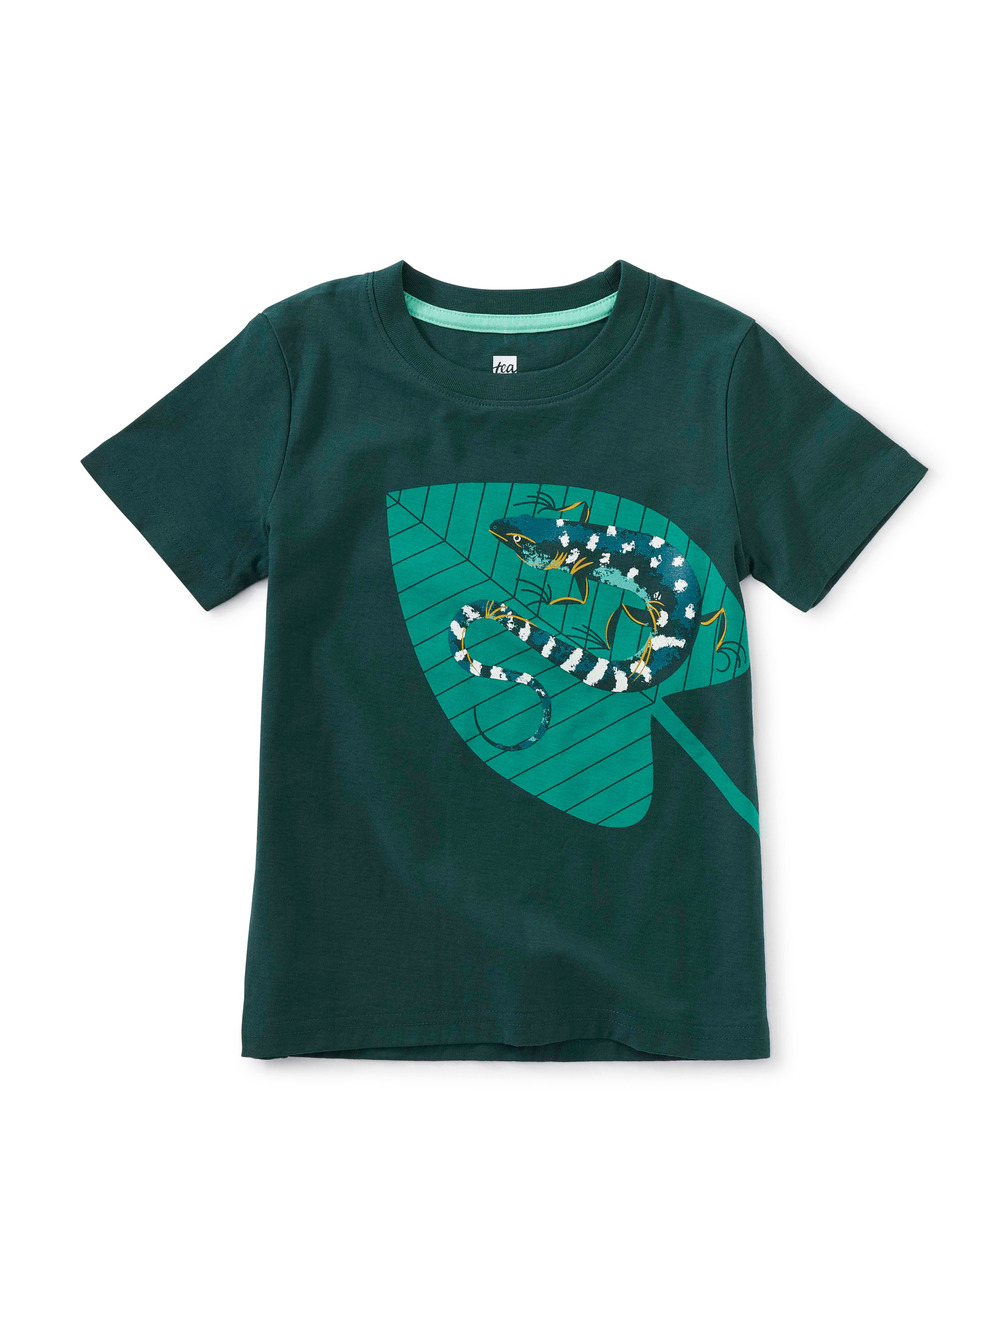 Glow in the Dark Reptile Tee